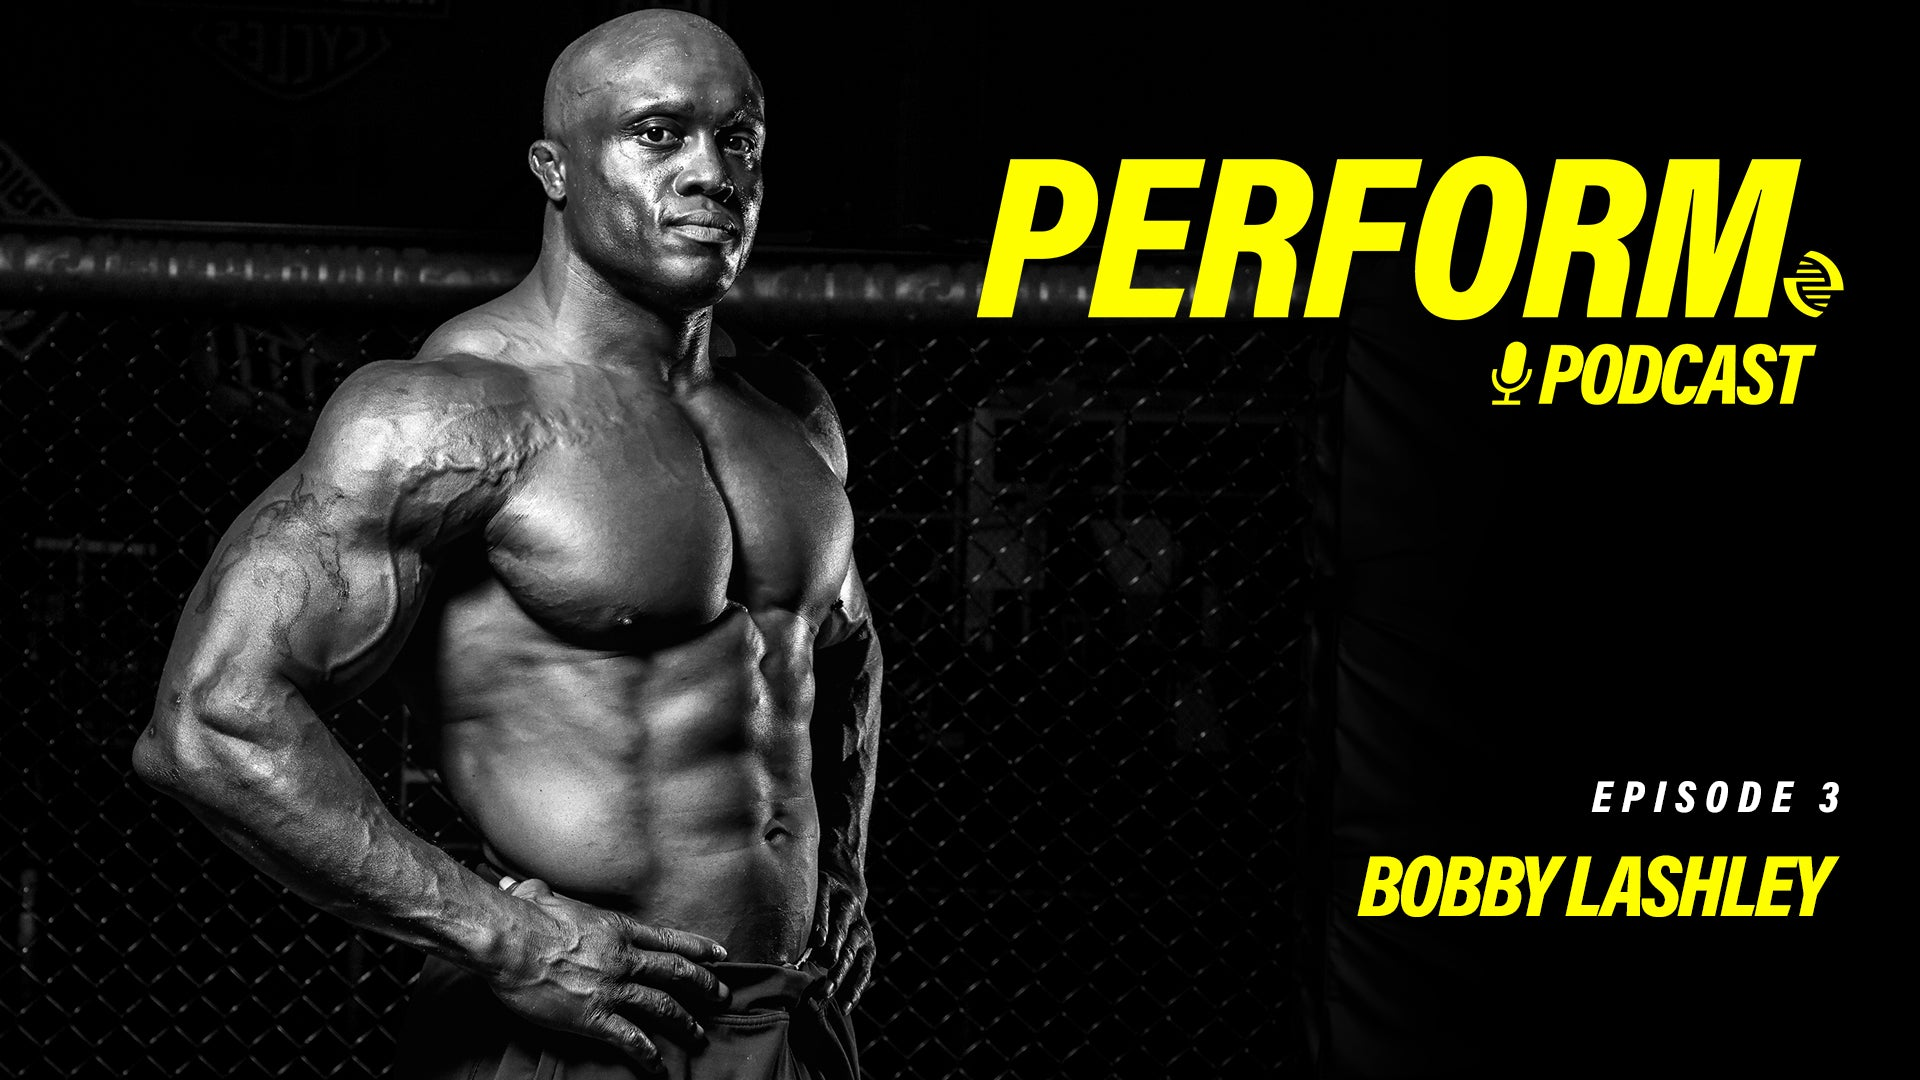 Perform Podcast Episode 003 - Bobby Lashley